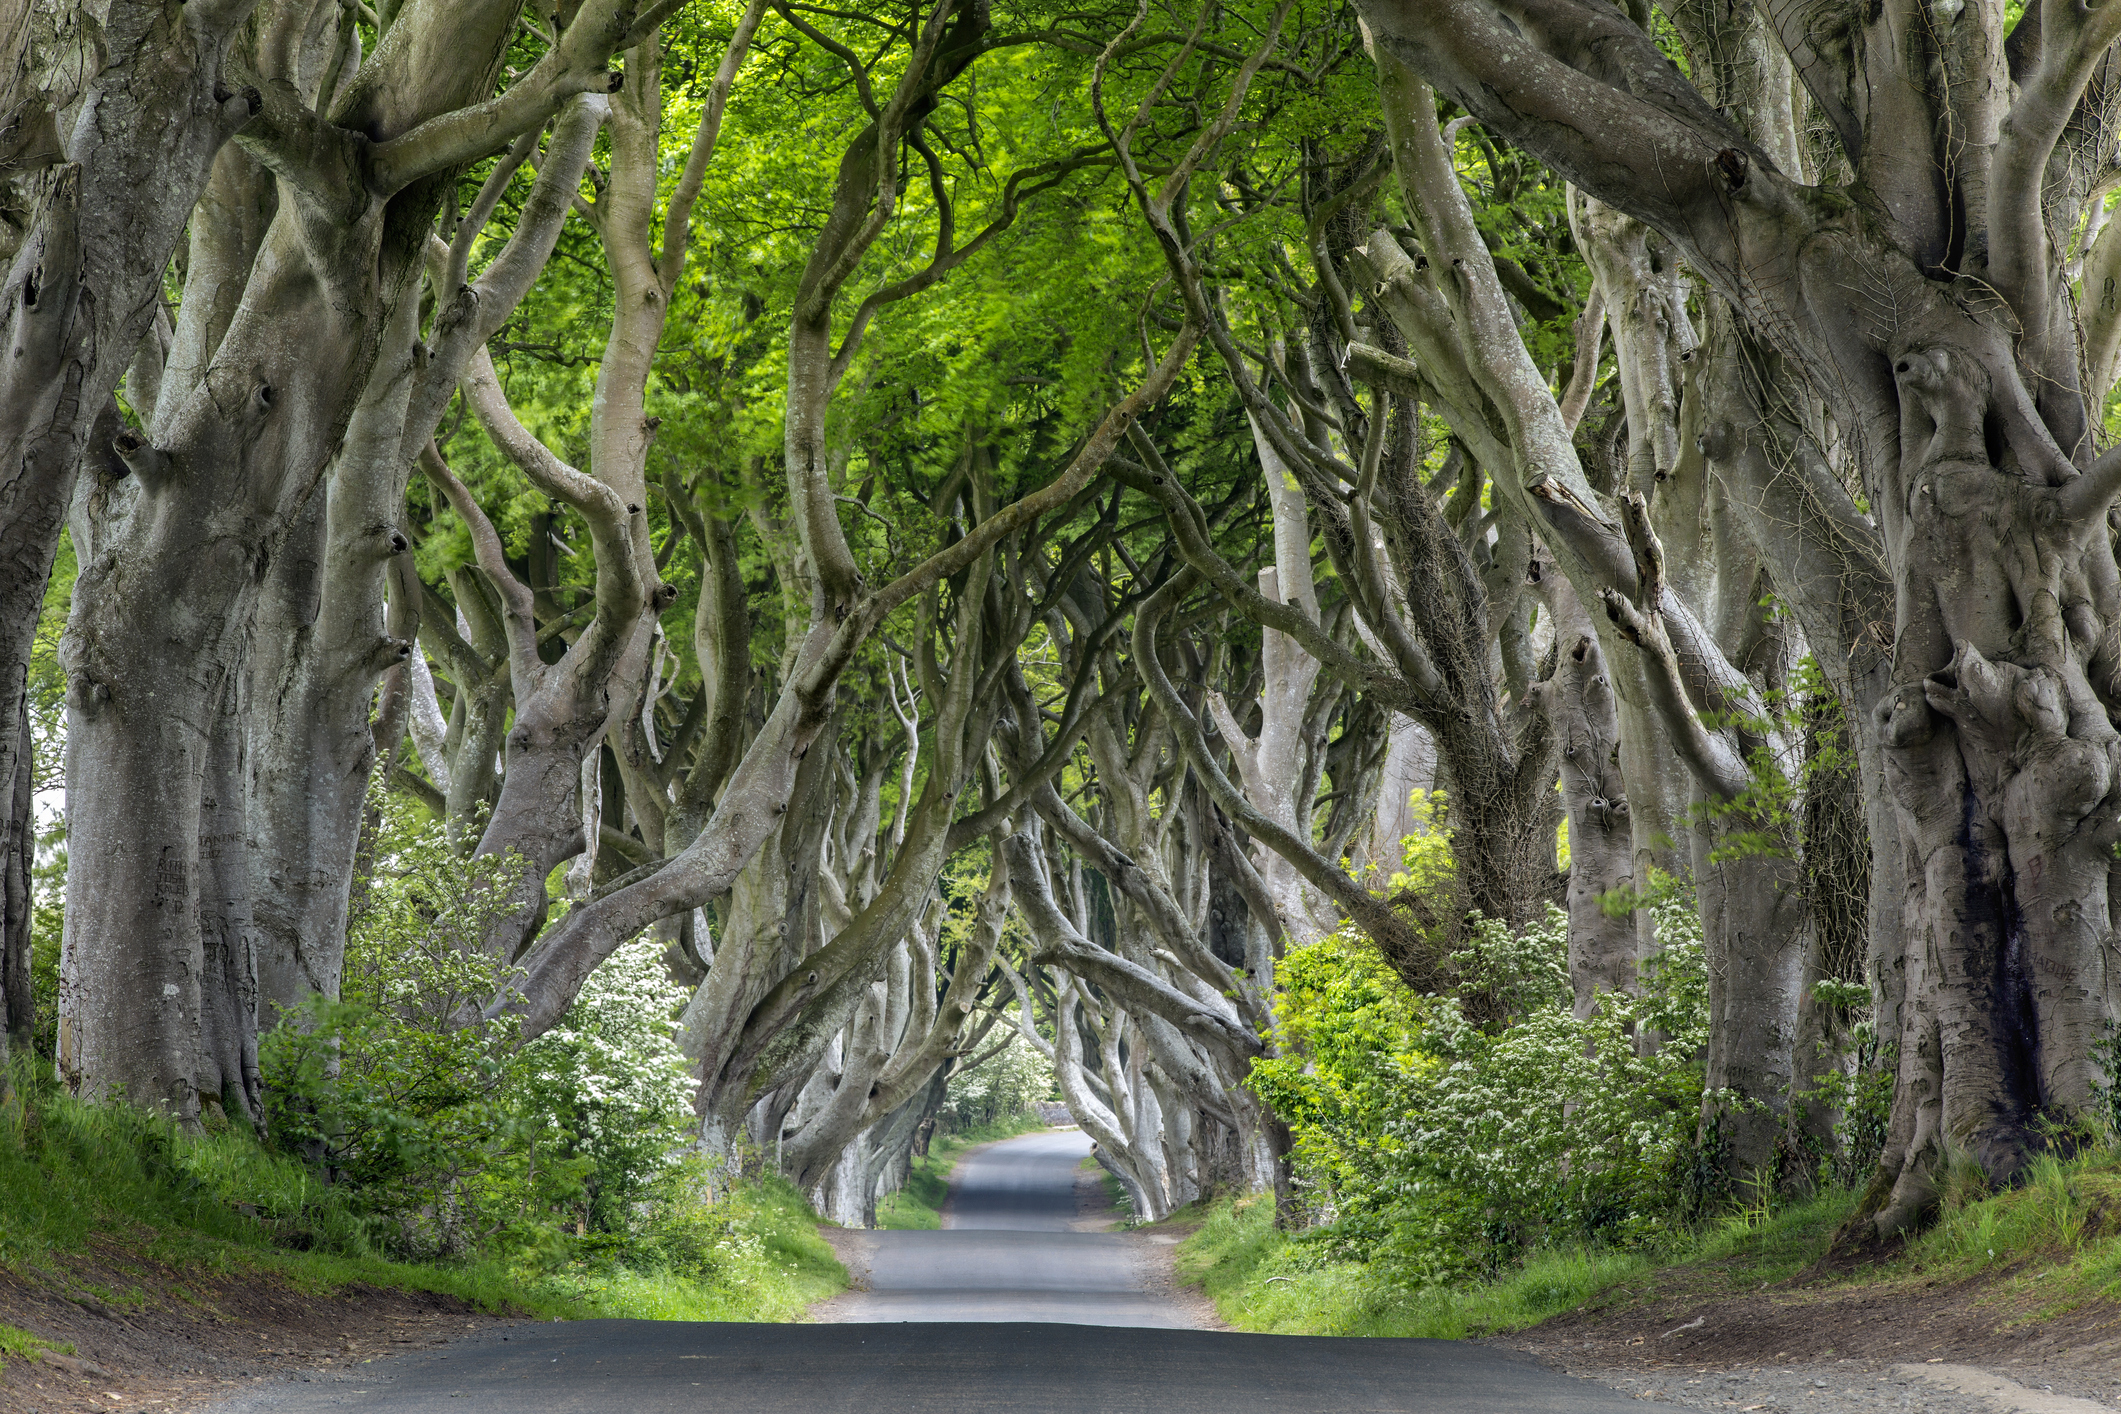 Must-have experiences for an invigorating Irish getaway